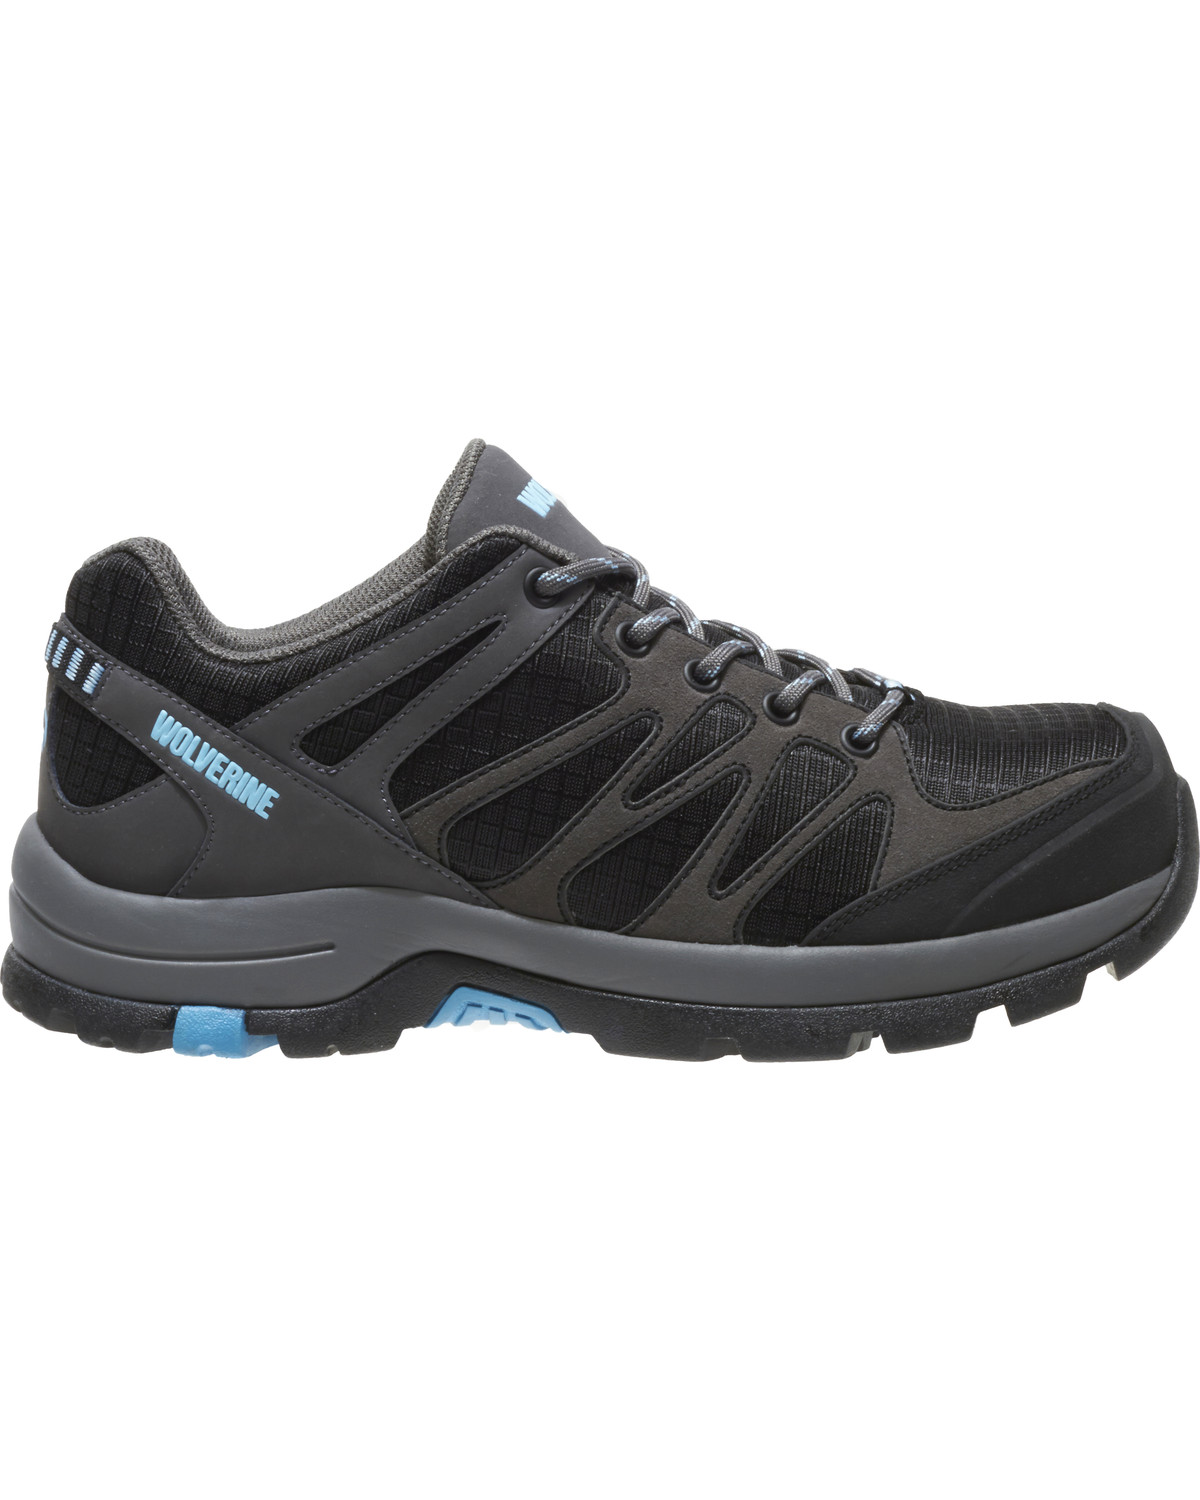 188493963a Wolverine Women s Fletcher Waterproof Hiking Shoes - Composite Toe ...